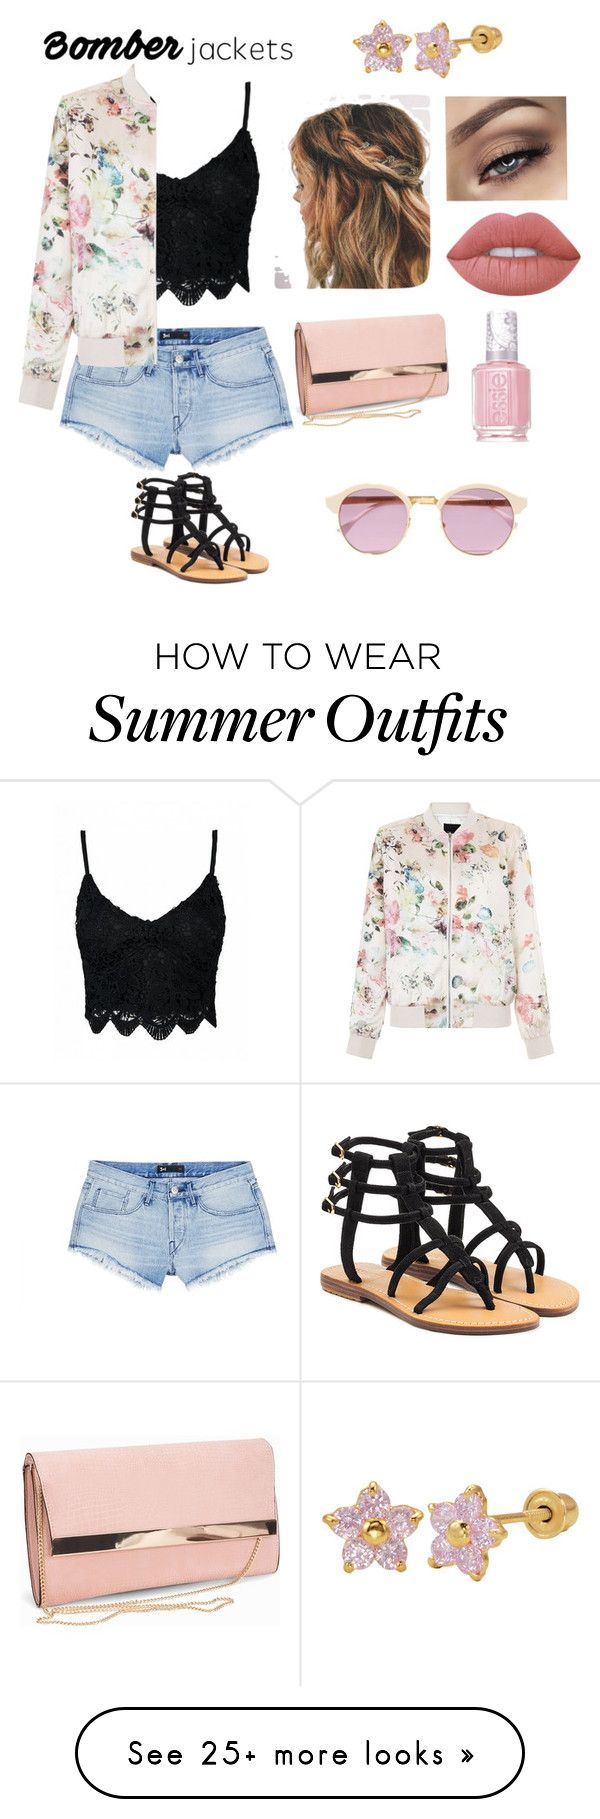 """""""Bomber jacket outfit"""" by depressednstressed on Polyvore featuring 3x1, Sheriff&Cherry, Lime Crime, Mystique, Essie, New Look and bomberjackets"""